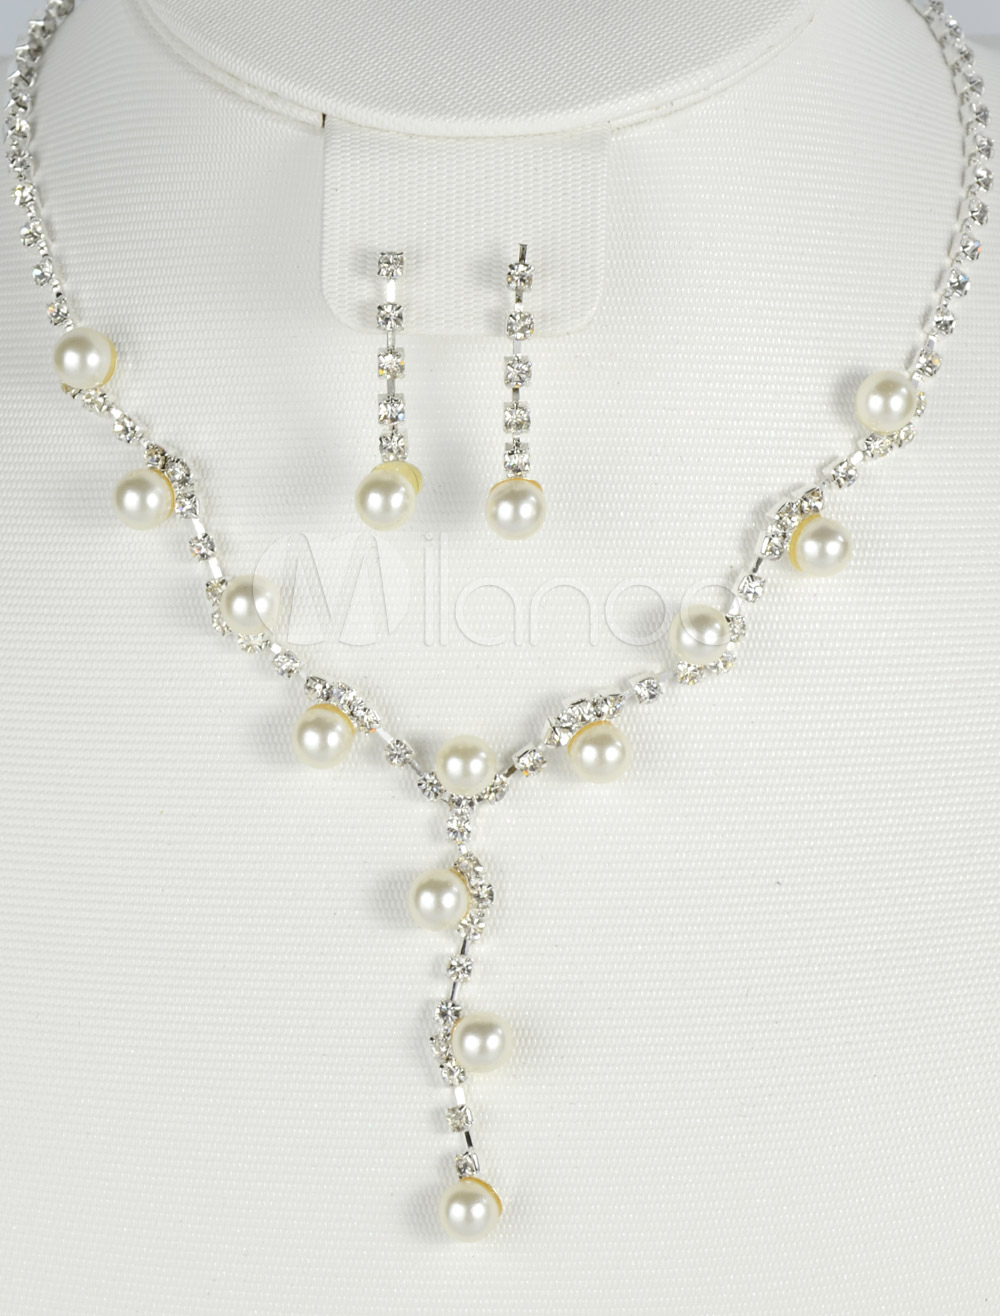 Silver Pearl Rhinestone Wedding Earrings and Necklace Jewelry Set